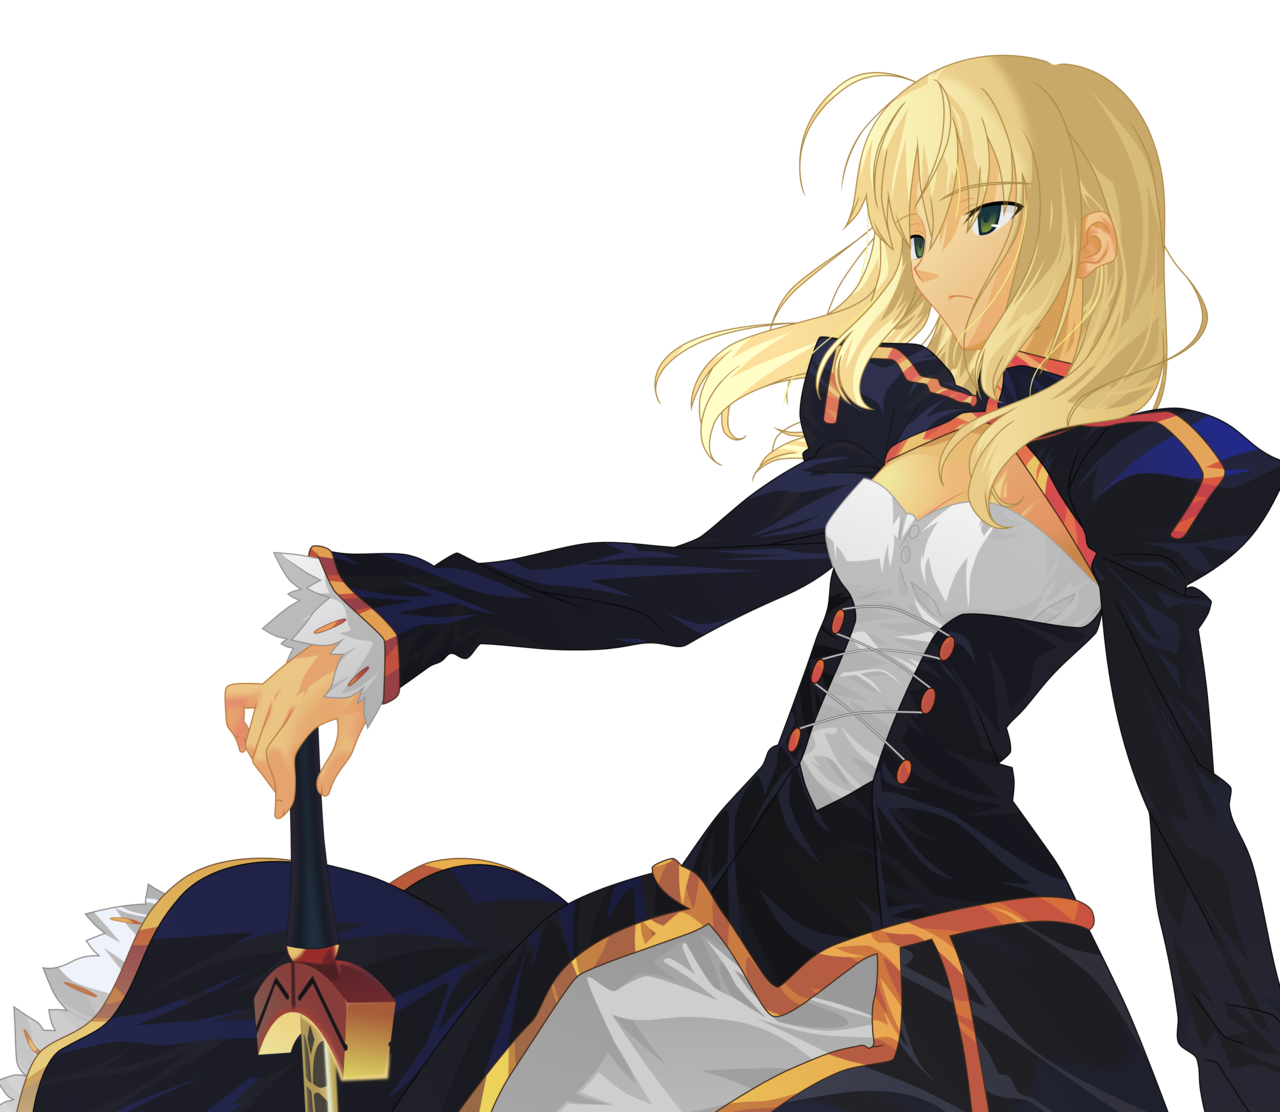 Saber transparent vector fate. Without the armor by